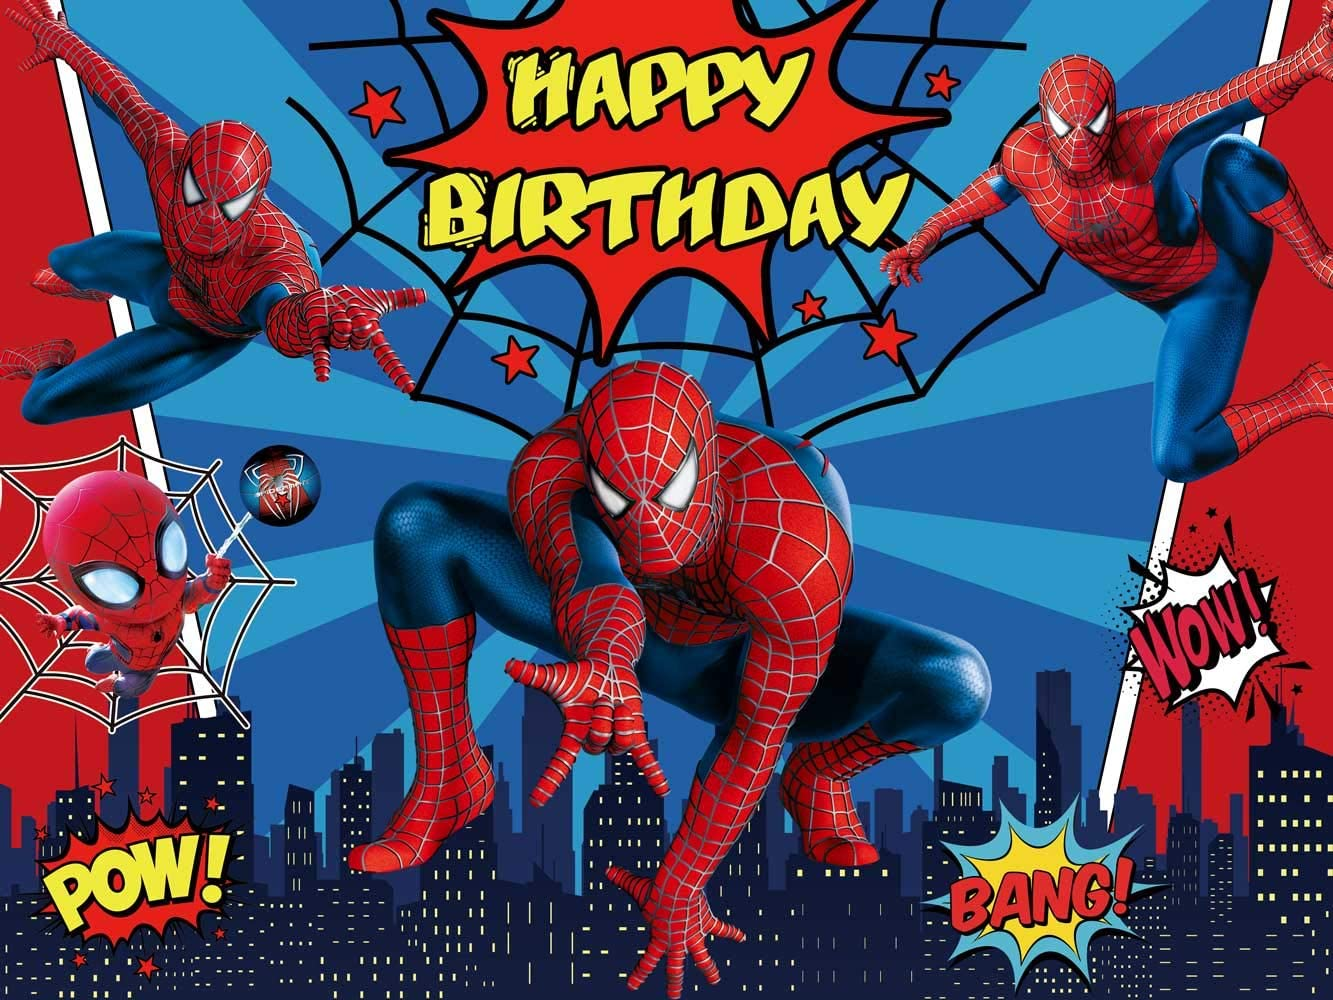 Spiderman Backdrop Marvel Birthday Banner Superhero Background Boys Party Supplies Kids Banner Photography Decorations Party Supplies Toys Games